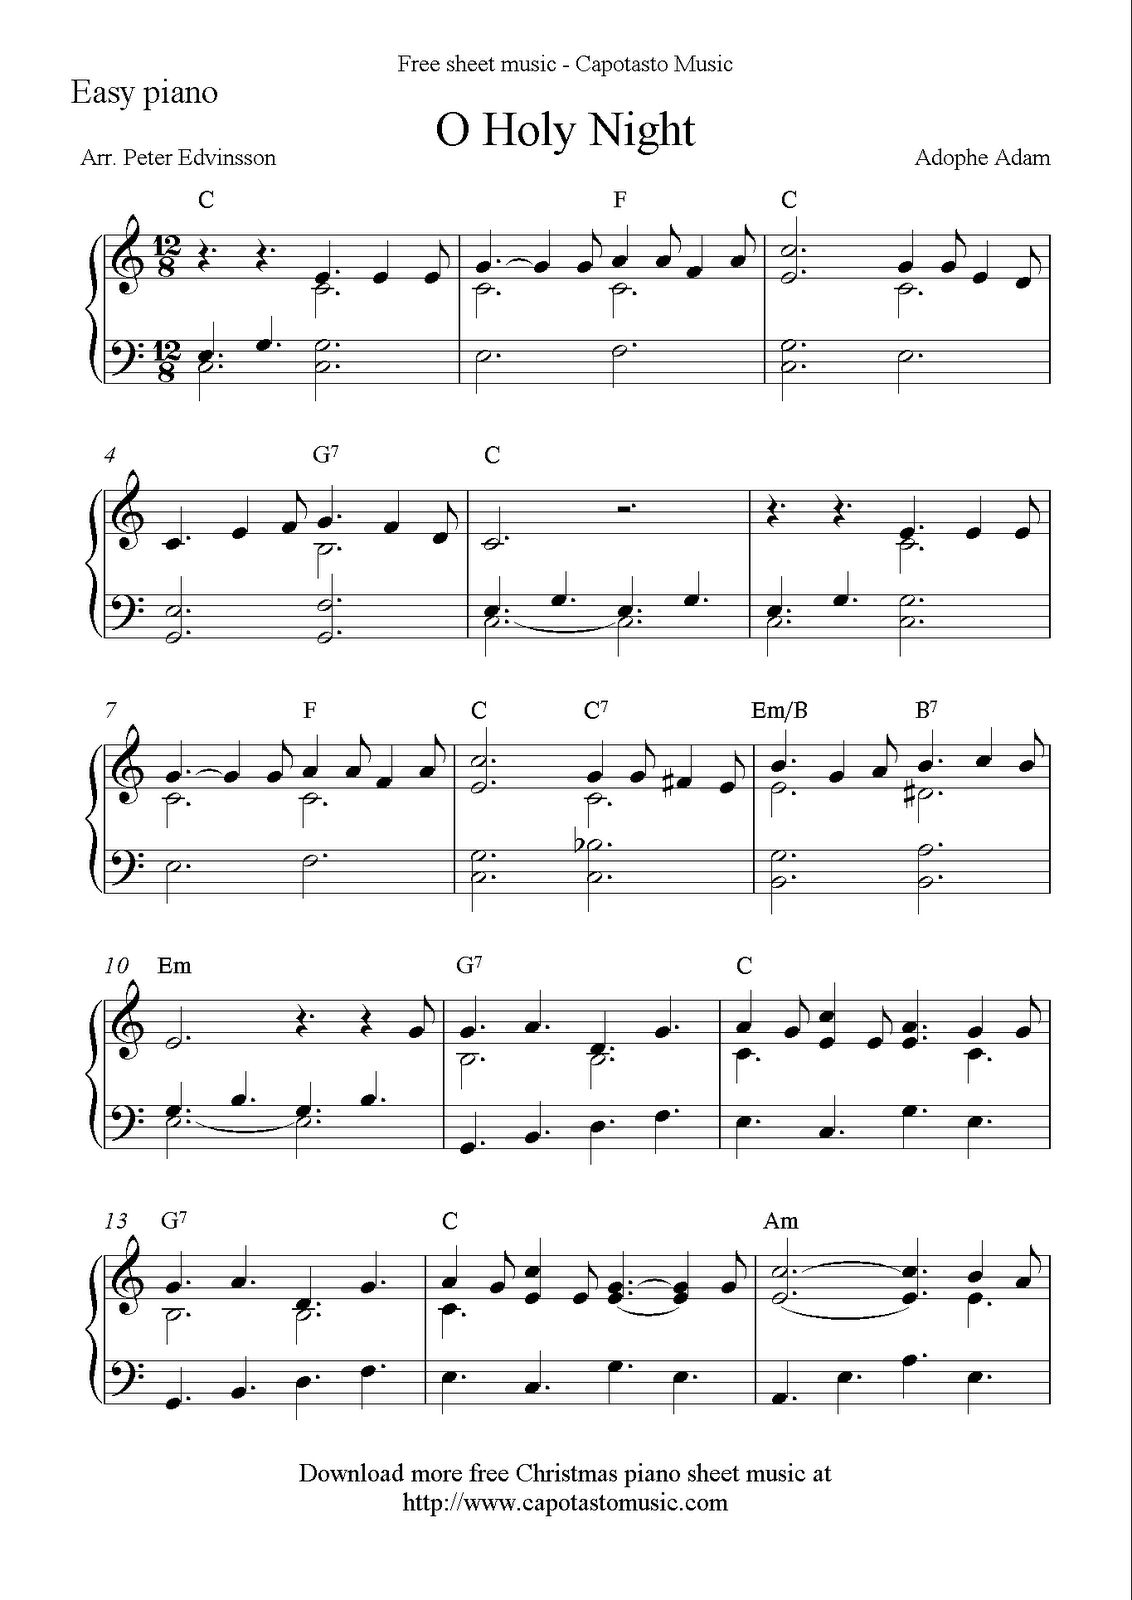 photograph relating to Printable Christmas Sheet Music referred to as Absolutely free uncomplicated Xmas piano sheet tunes, O Holy Evening